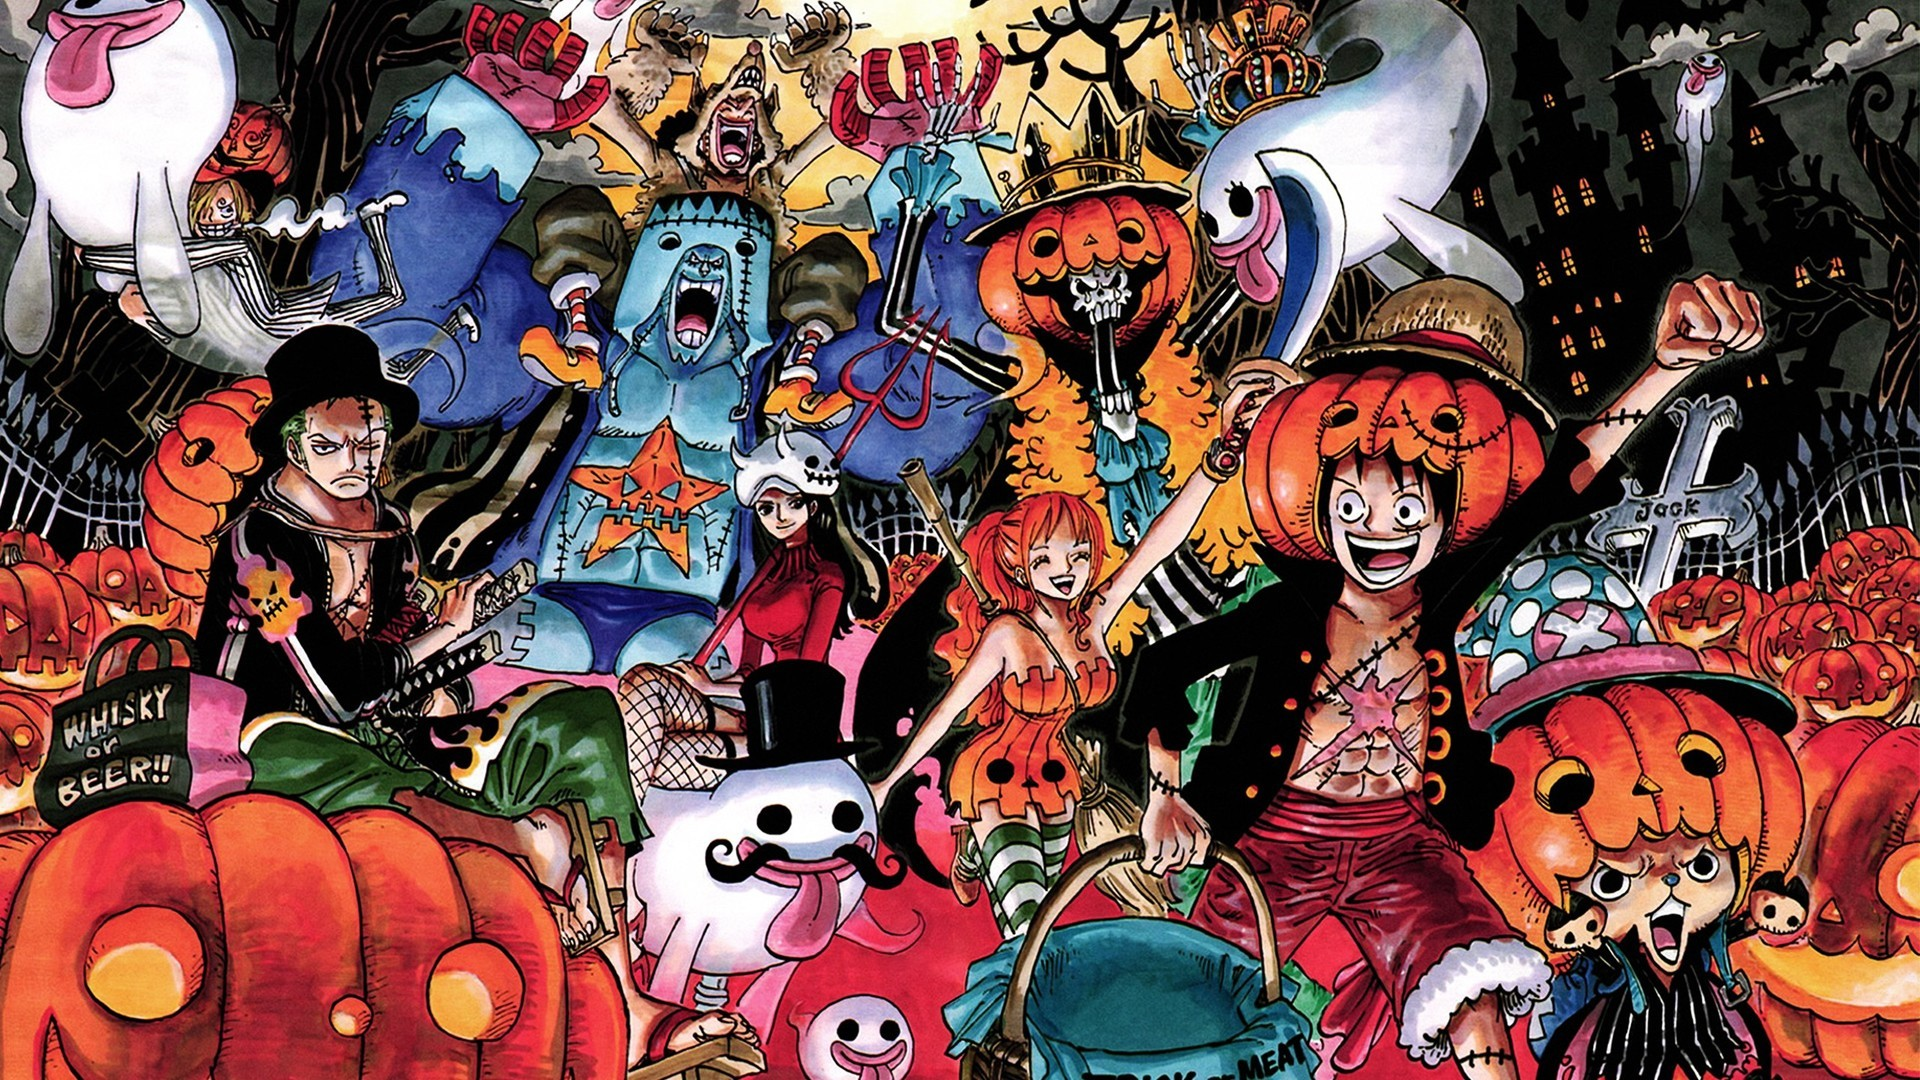 1486273 large one piece wallpaper 1920x1080 1920x1080 for windows 7